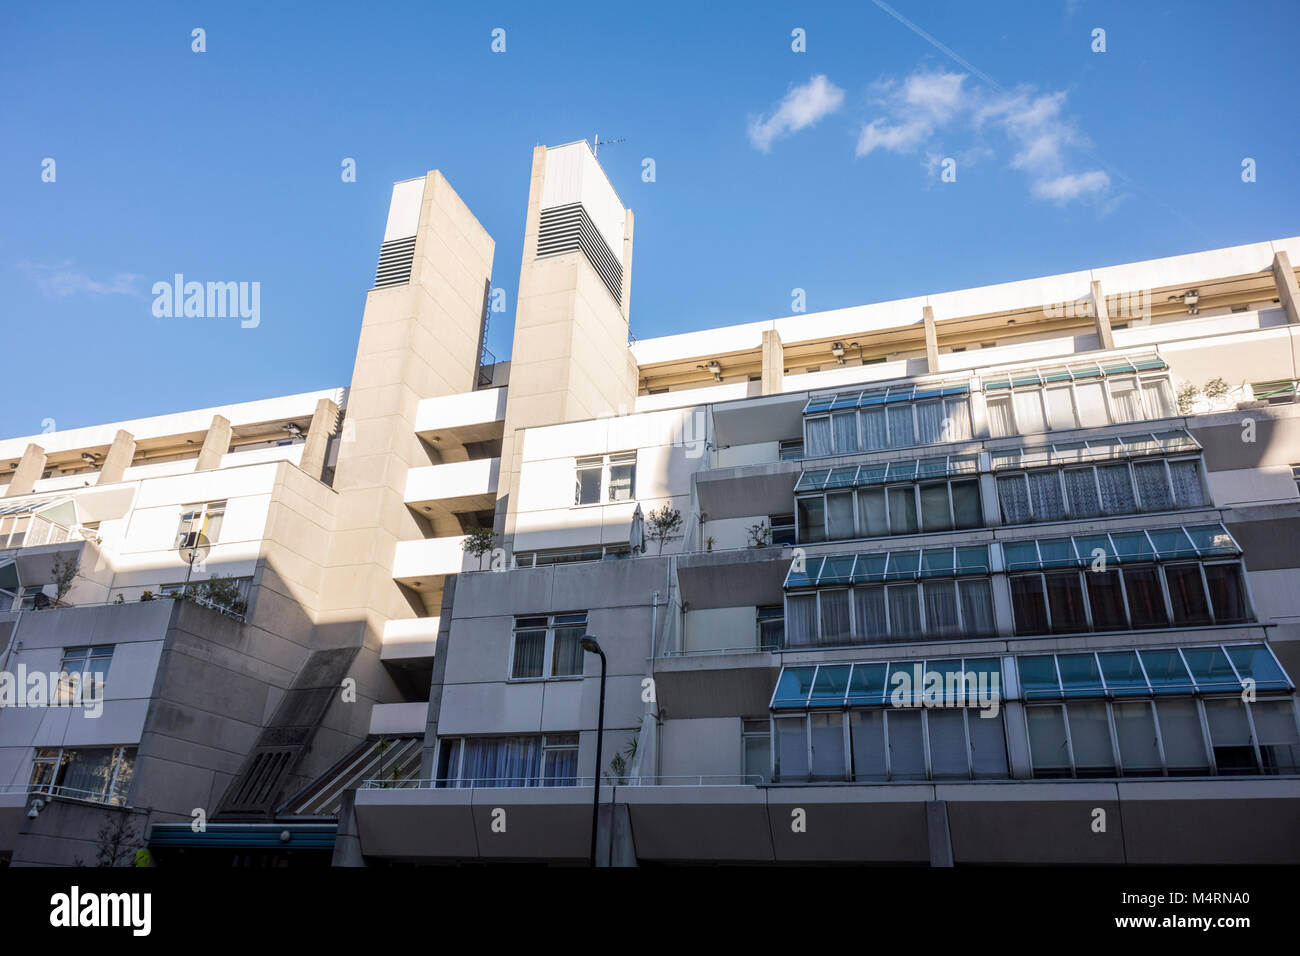 The Brunswick Centre Brutalist architecture, Bloomsbury, London, UK - Stock Image